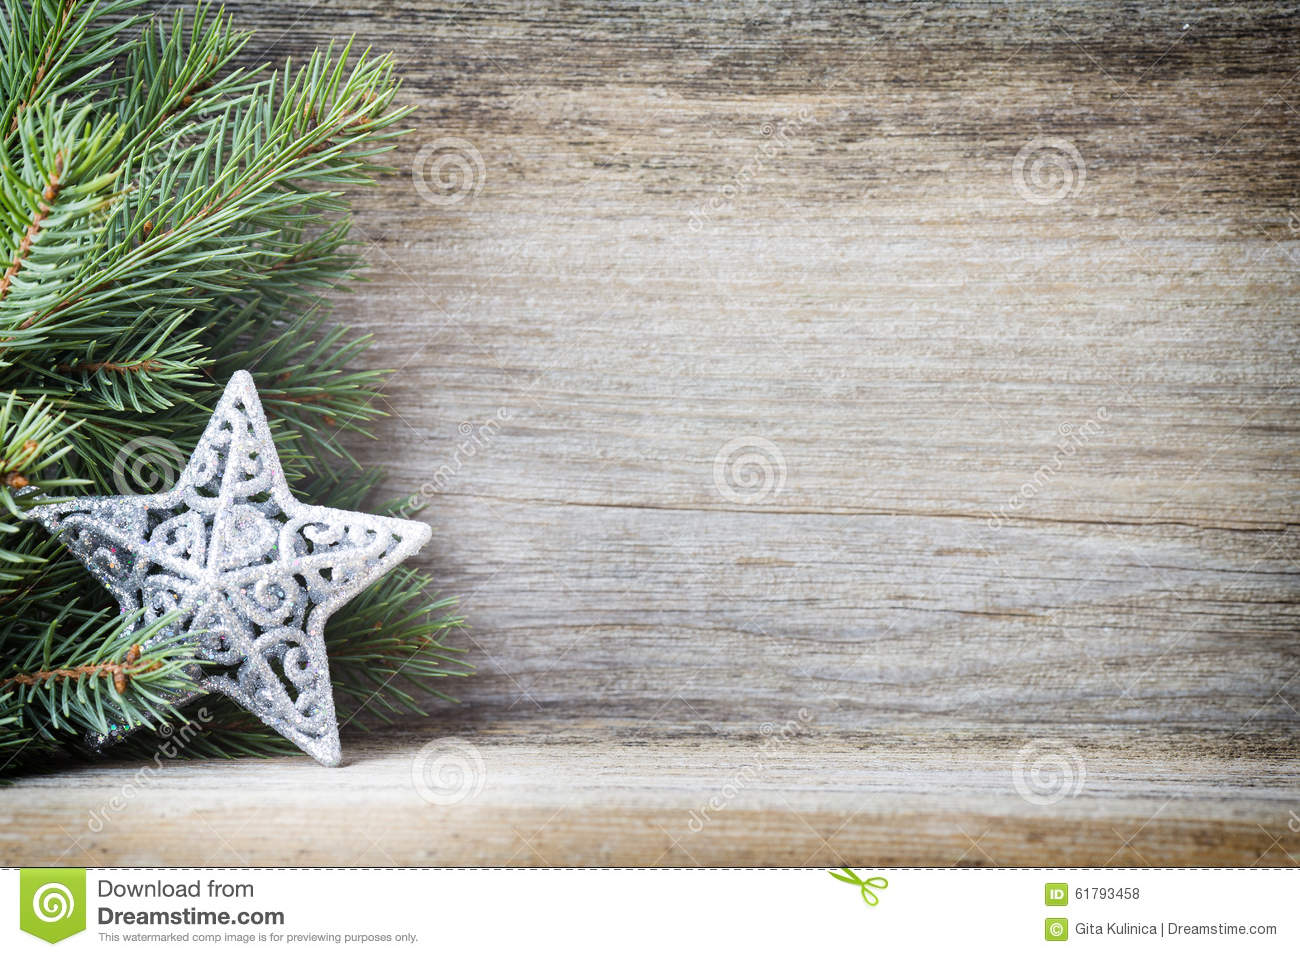 Christmas Wood Background.Christmas Wood Background Images Thecannonball Org